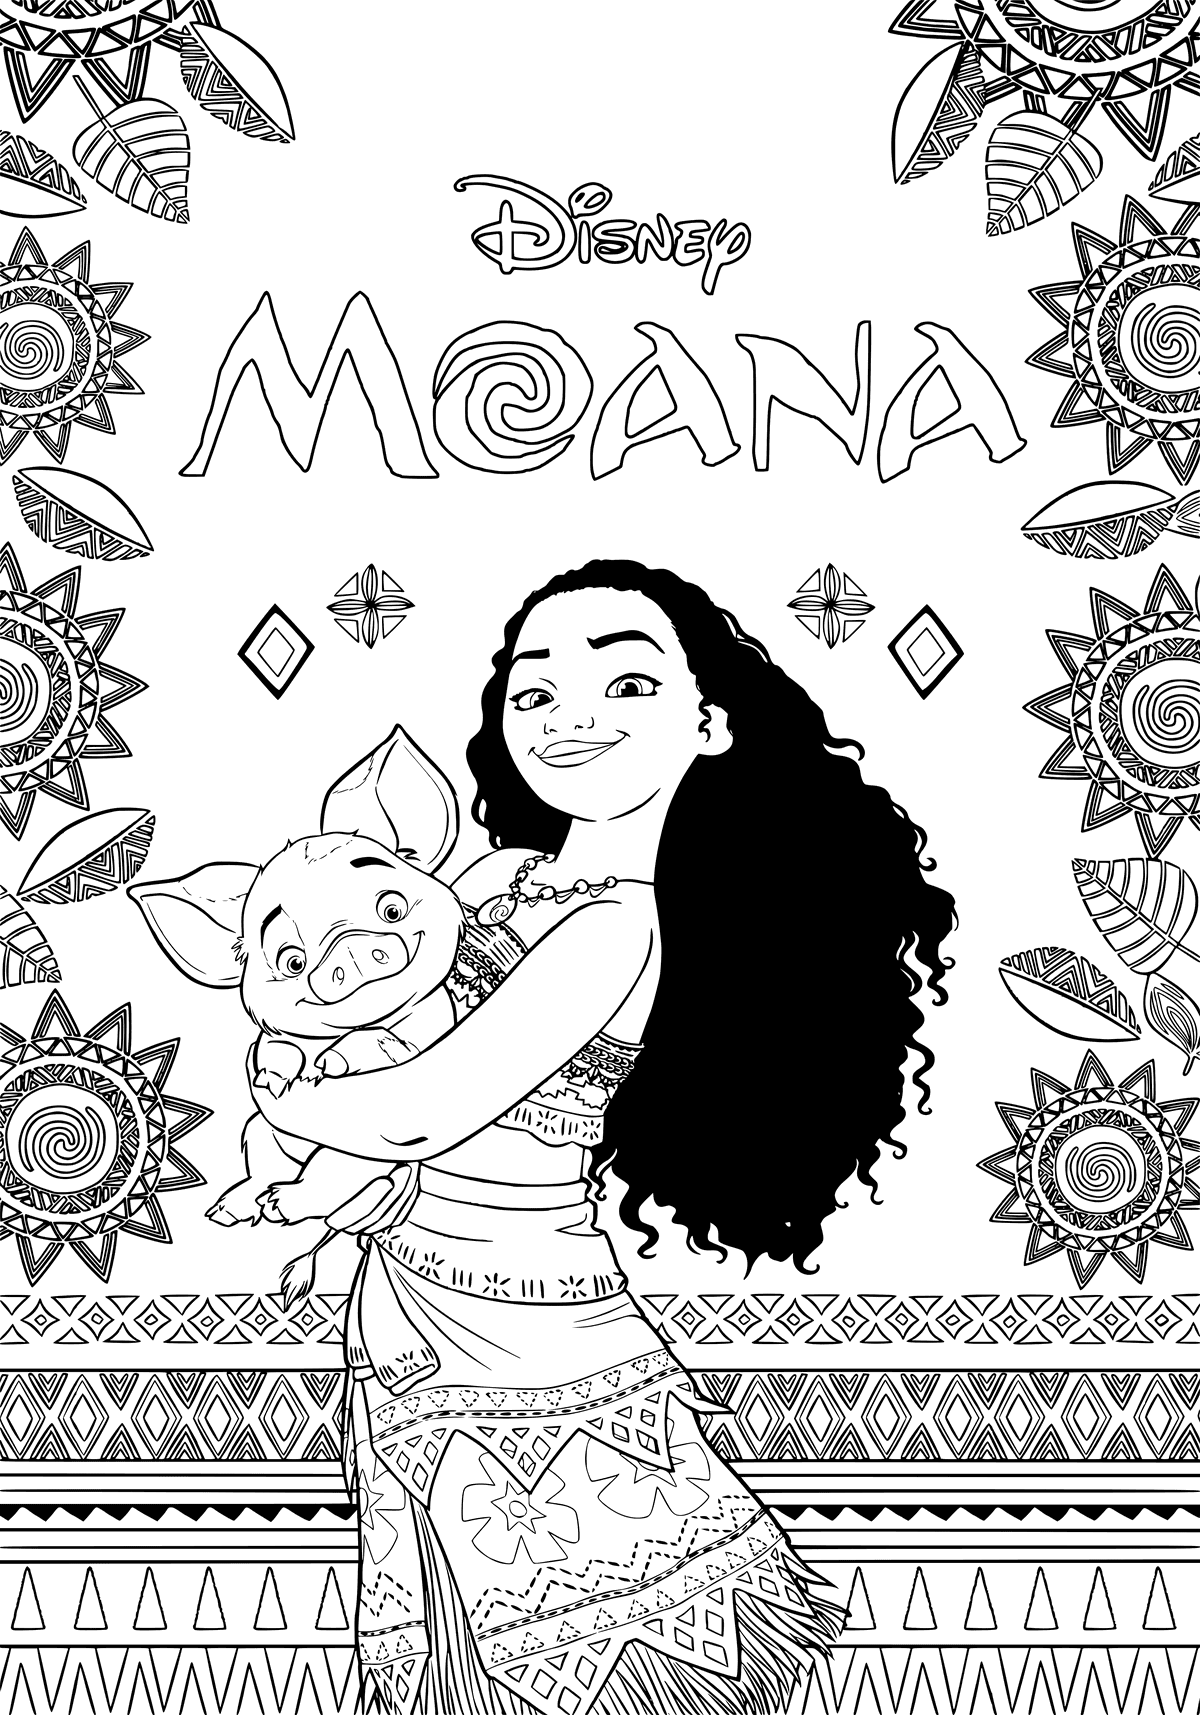 Moana Disney Coloring Pages Printable And Book To Print For Free Find More Online Kids Adults Of